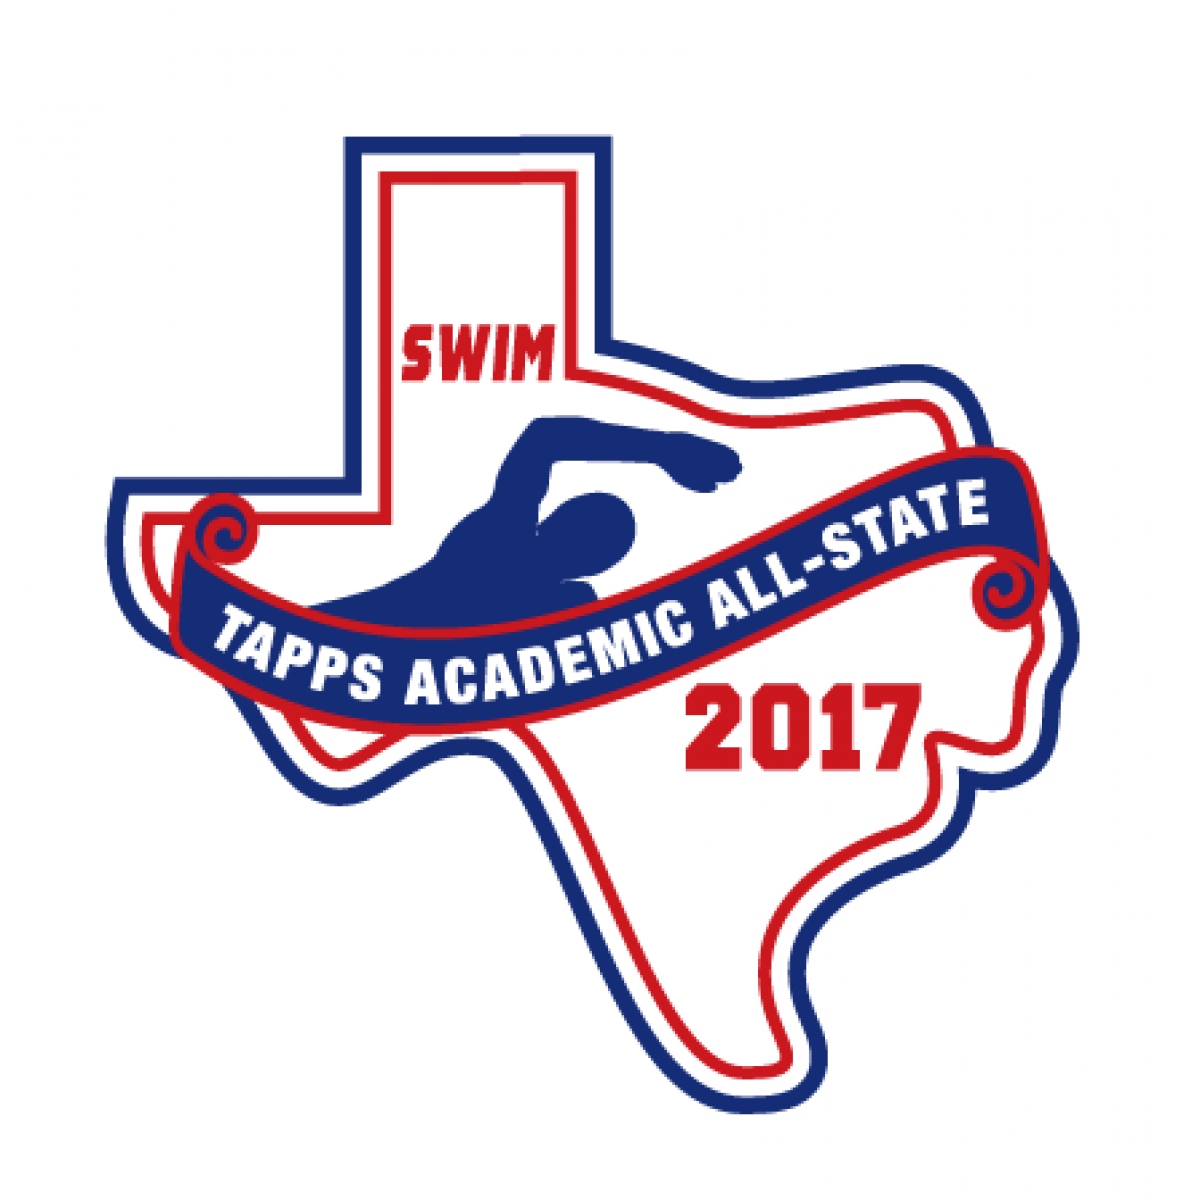 Felt TAPPS 2017 Swim Academic All-State Patch